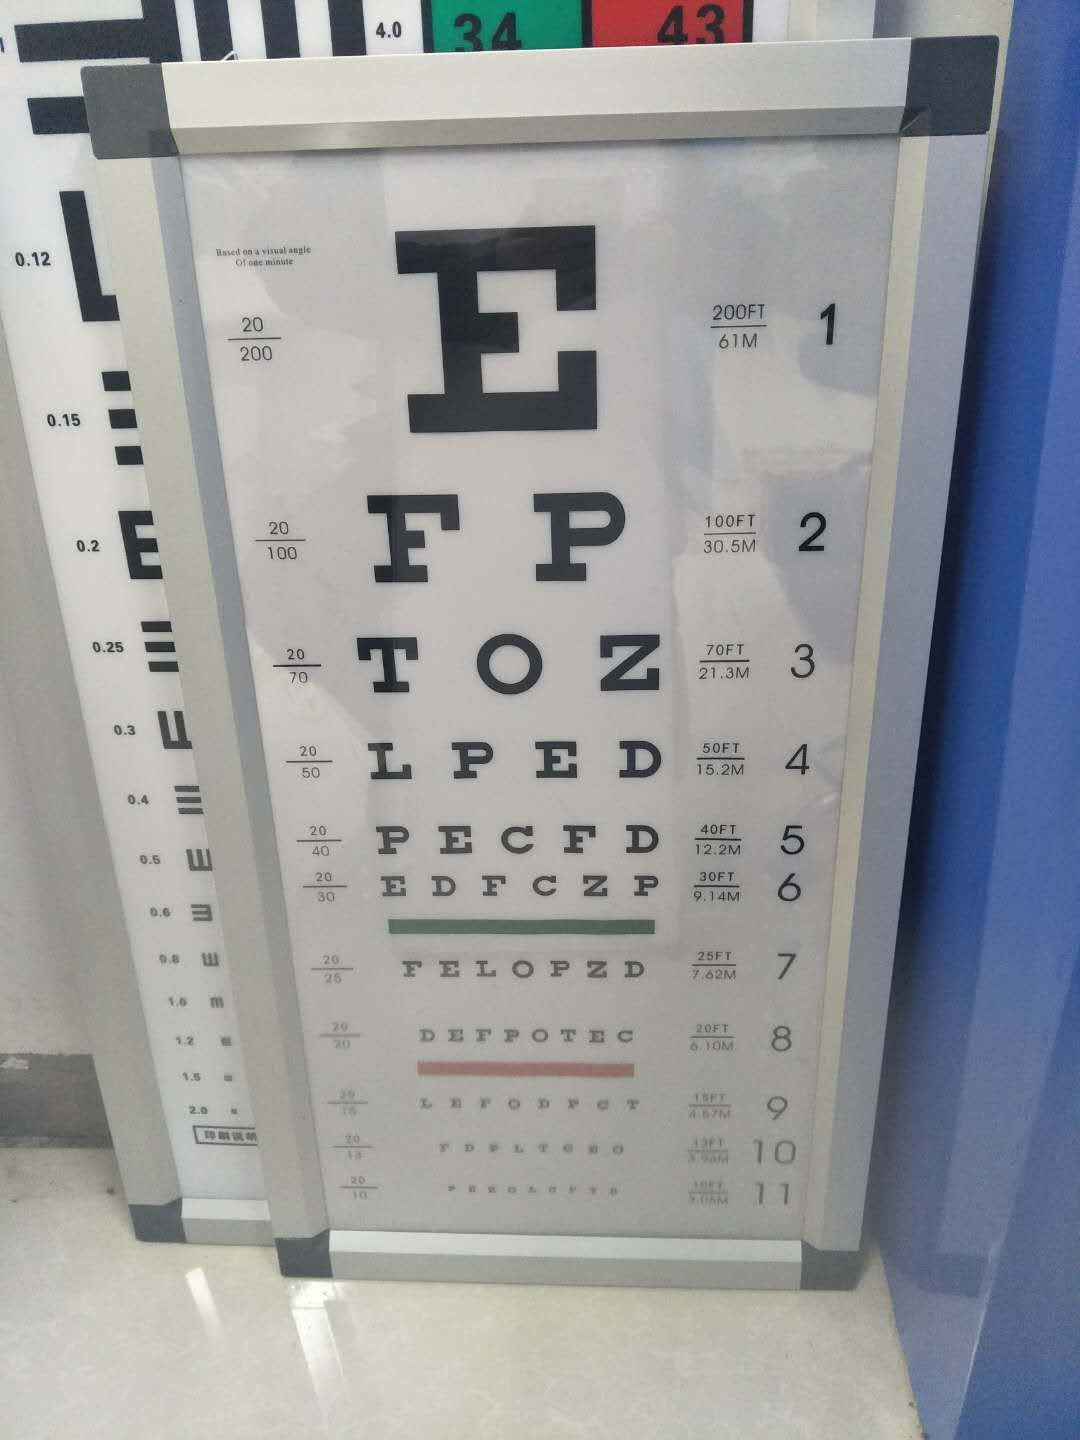 6M LED Ultrathin Vision Chart